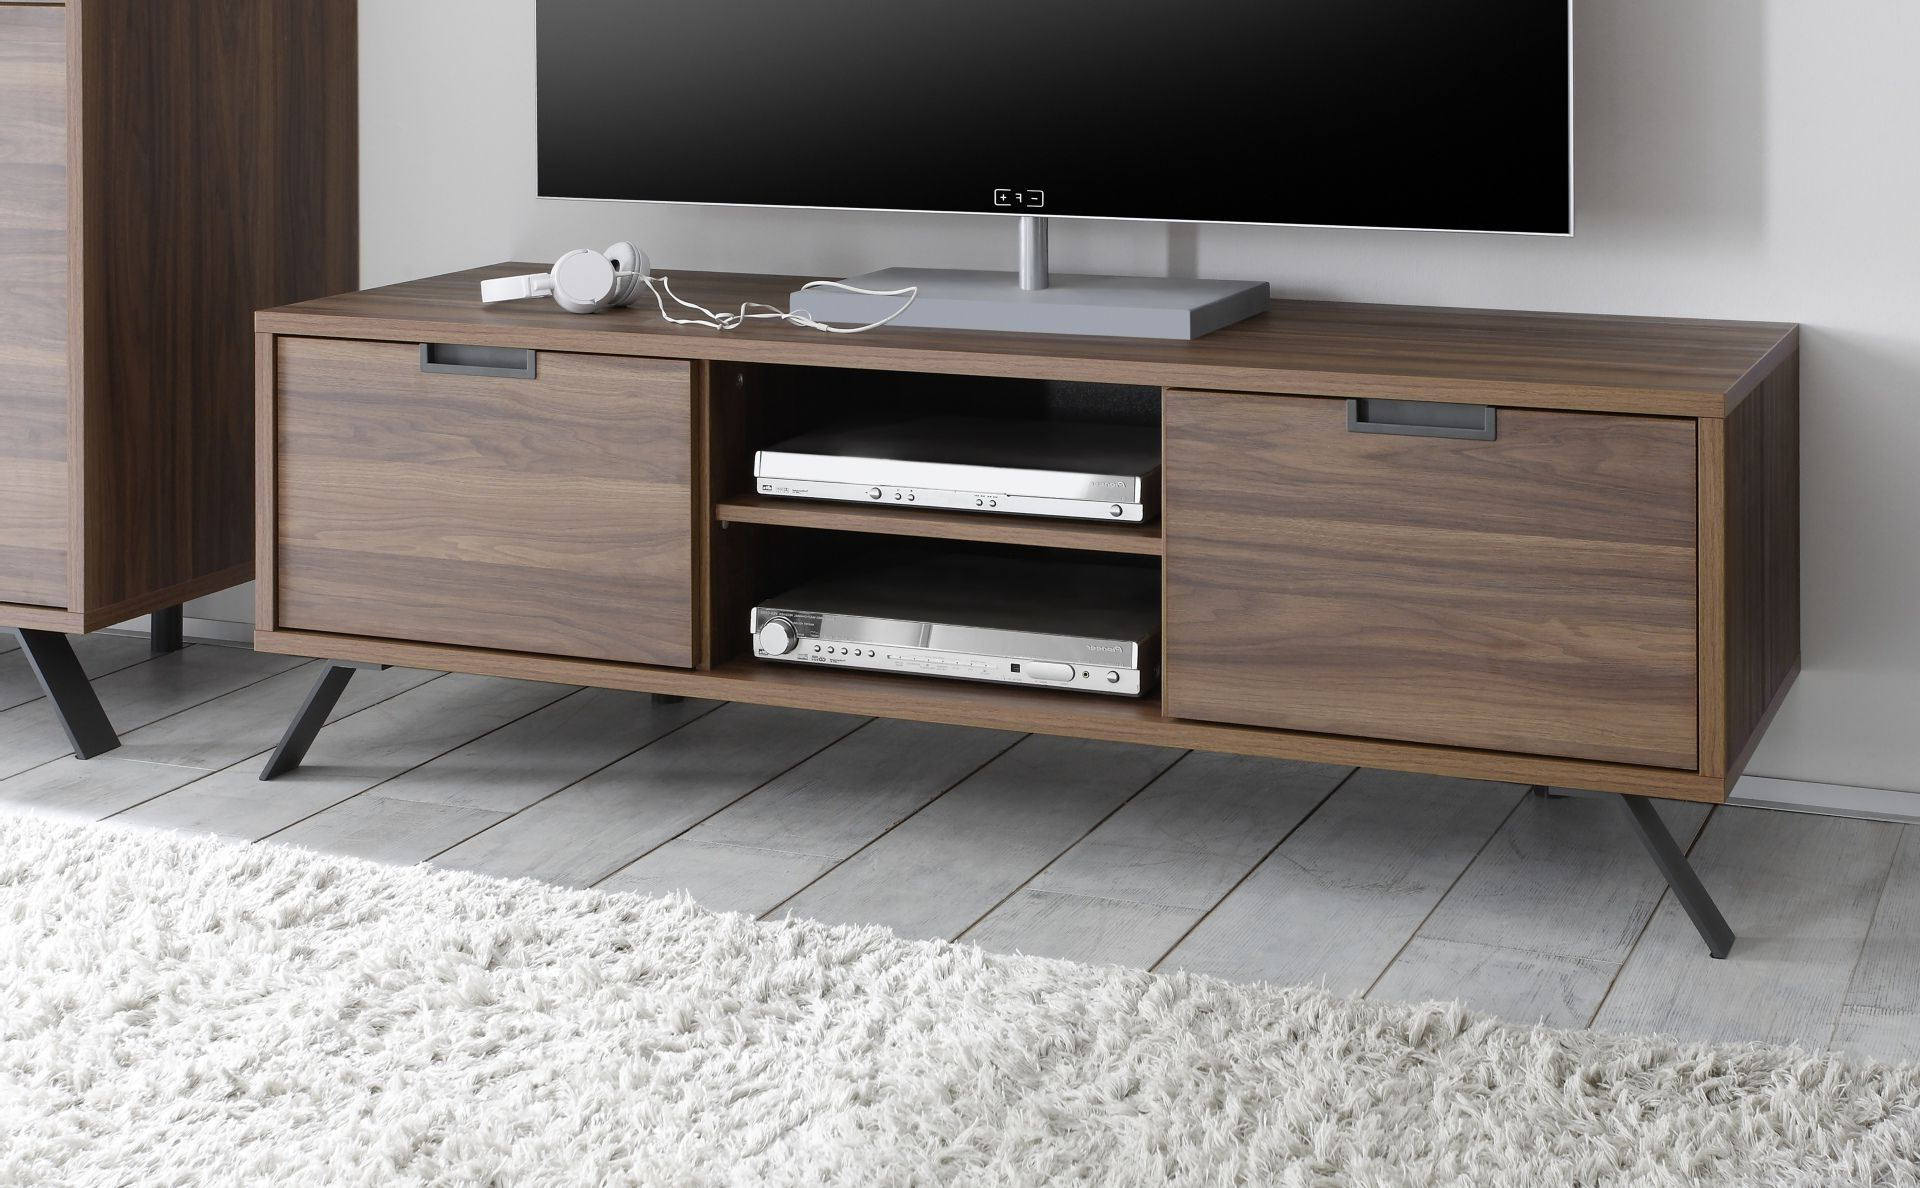 Famous Luxury Tv Stands For Walnut Color Wooden Tv Stand. Beautiful Walnut Finish Makes It (Gallery 17 of 20)